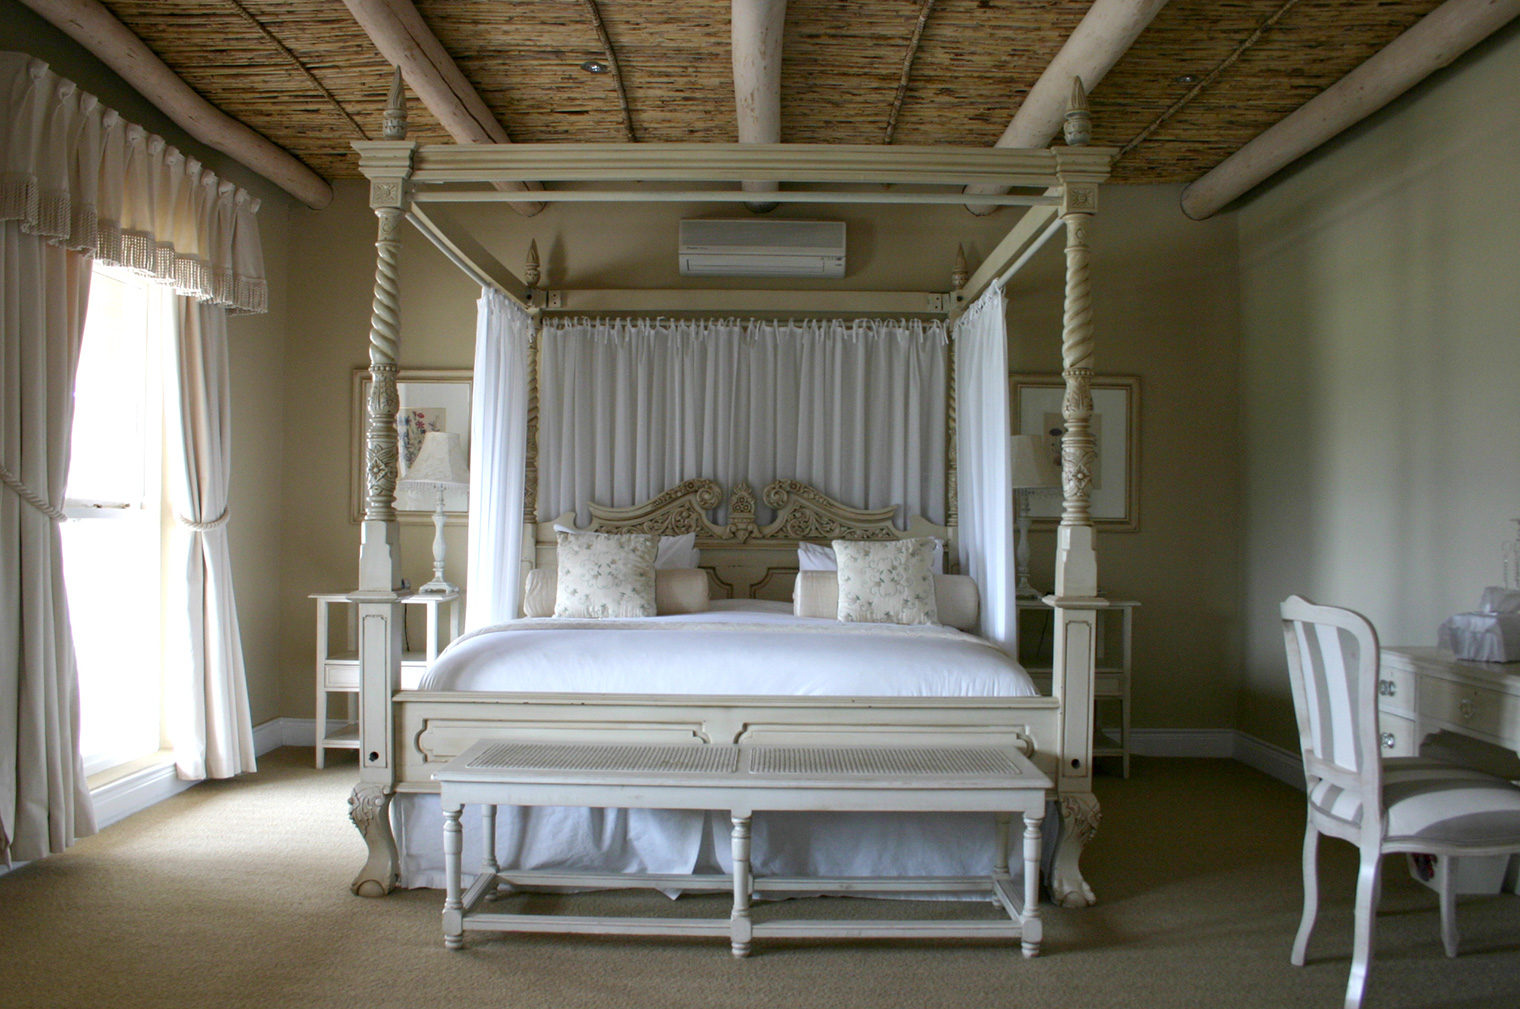 La-Petite-Ferme-South-Africa-Bedroom